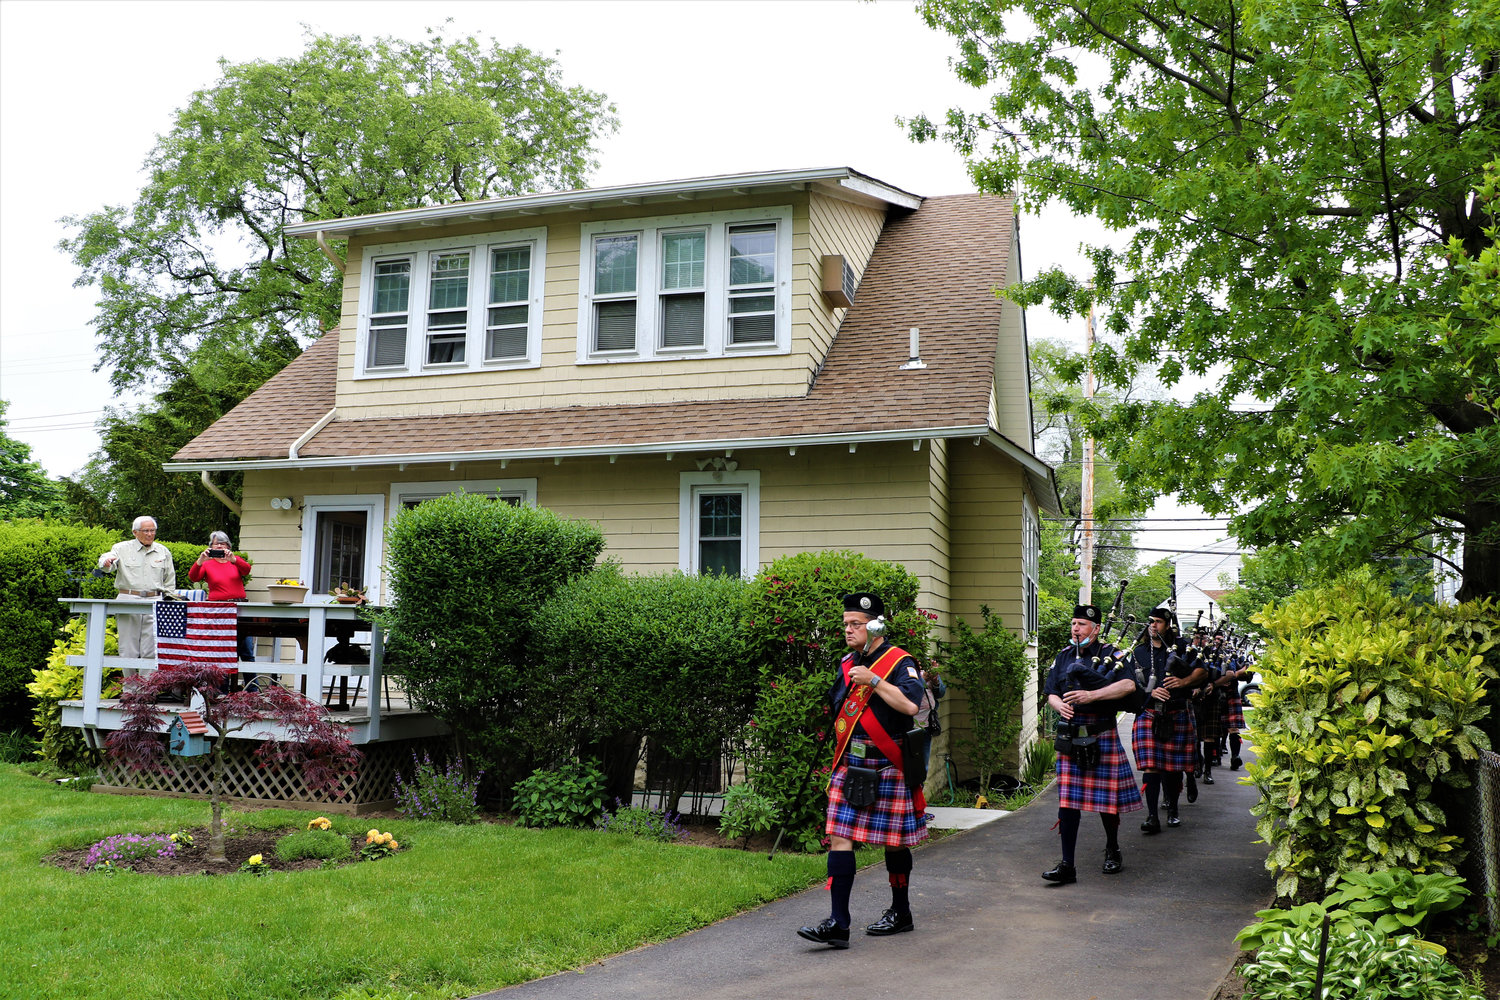 Members of the Wantagh American Legion Pipe Band performed.